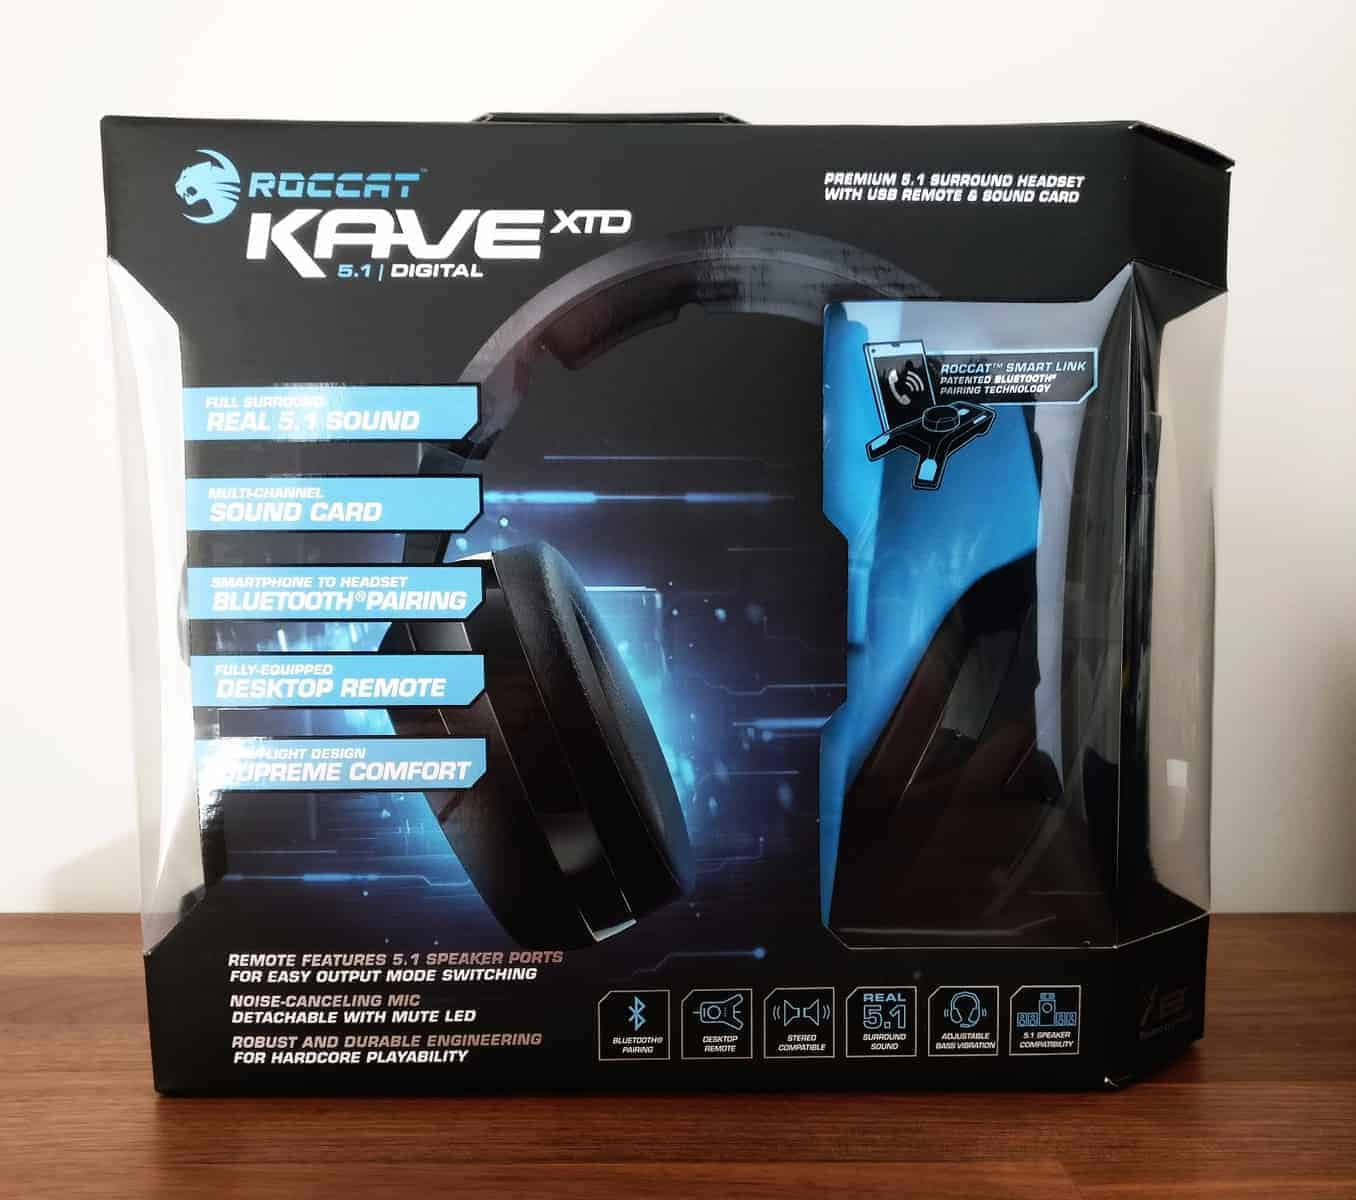 roccat-kave-photos19 Roccat Kave XTD 5.1 Digital Gaming Headset Review